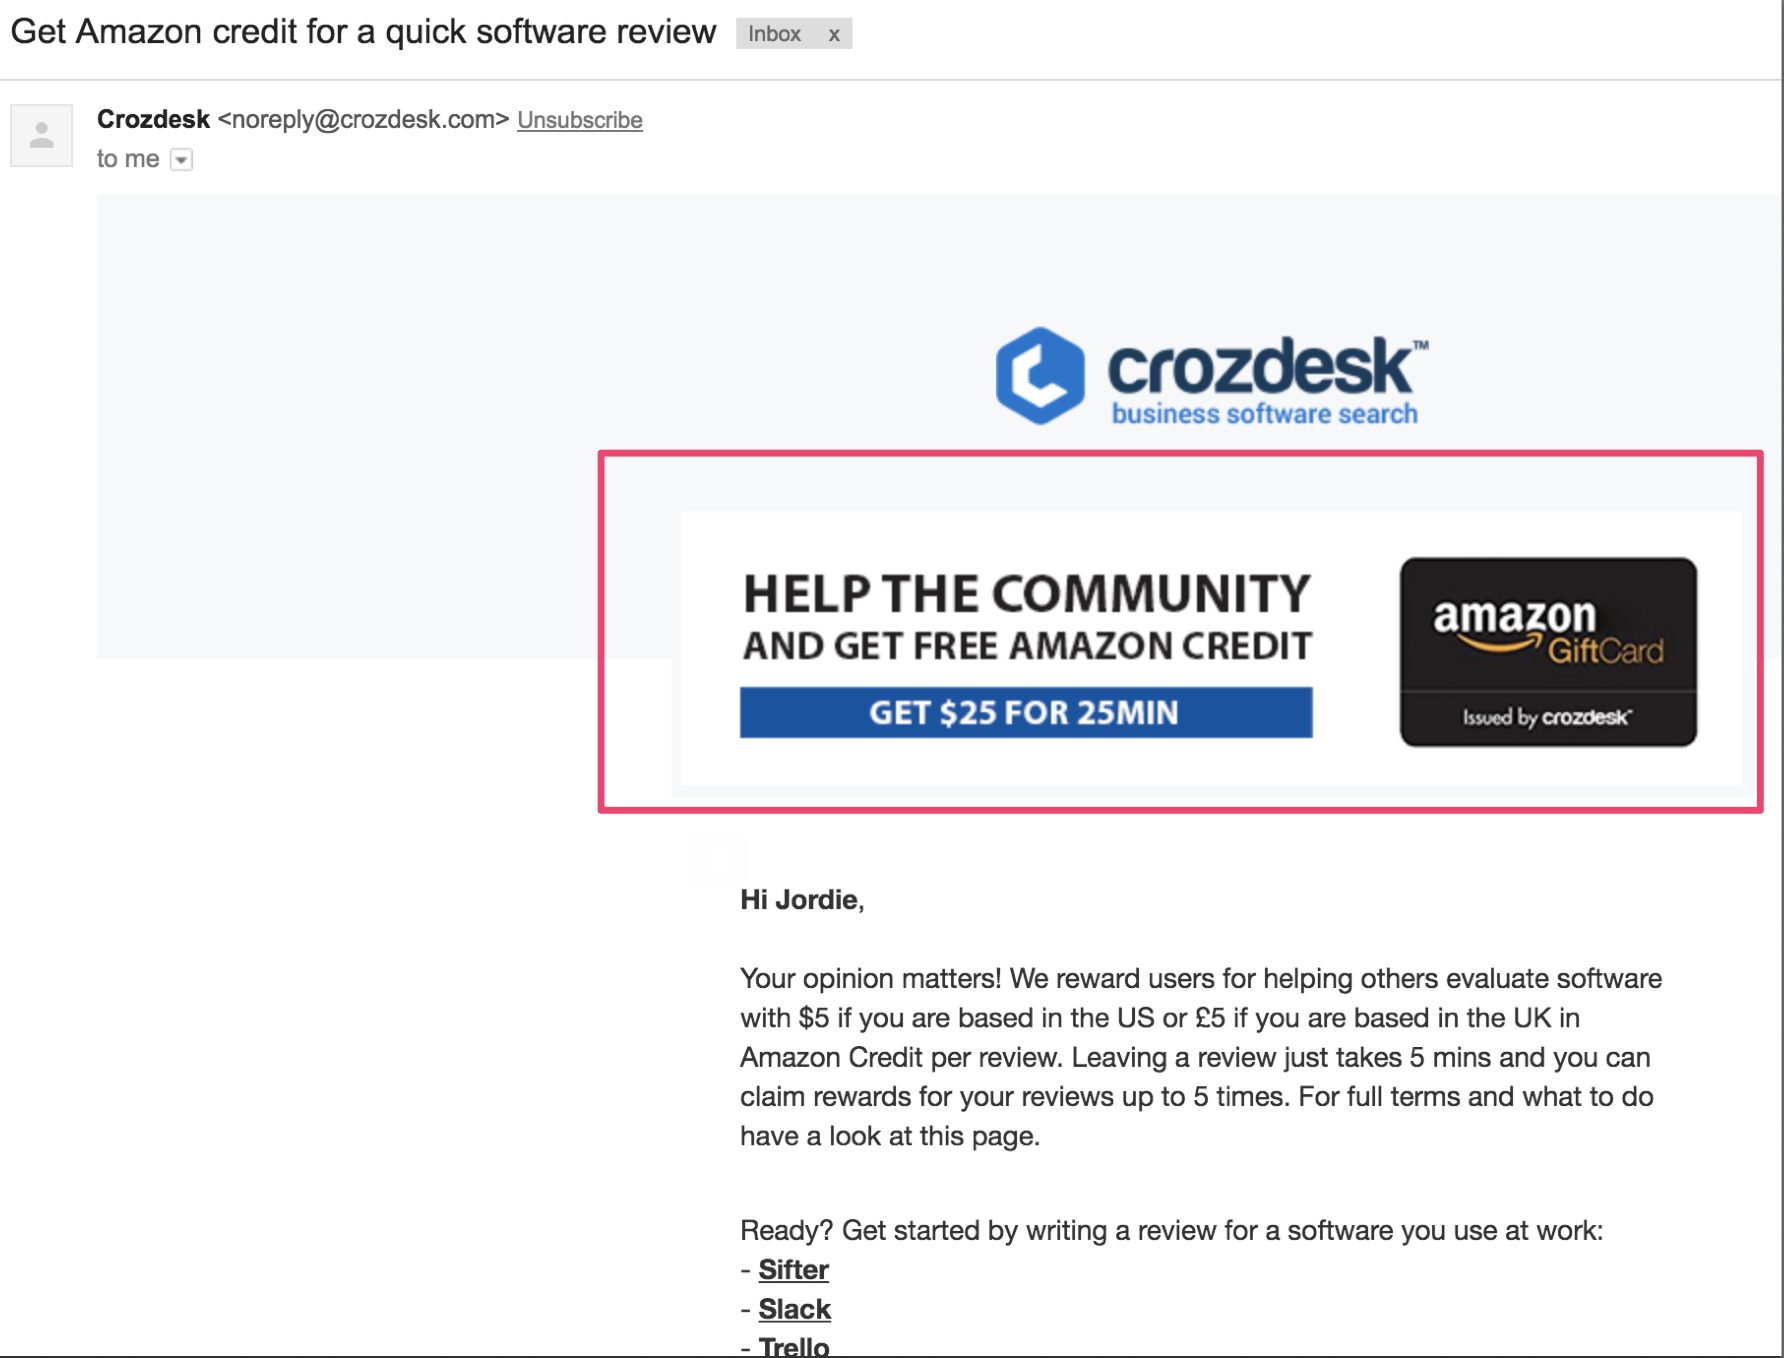 Crozdesk Email copy